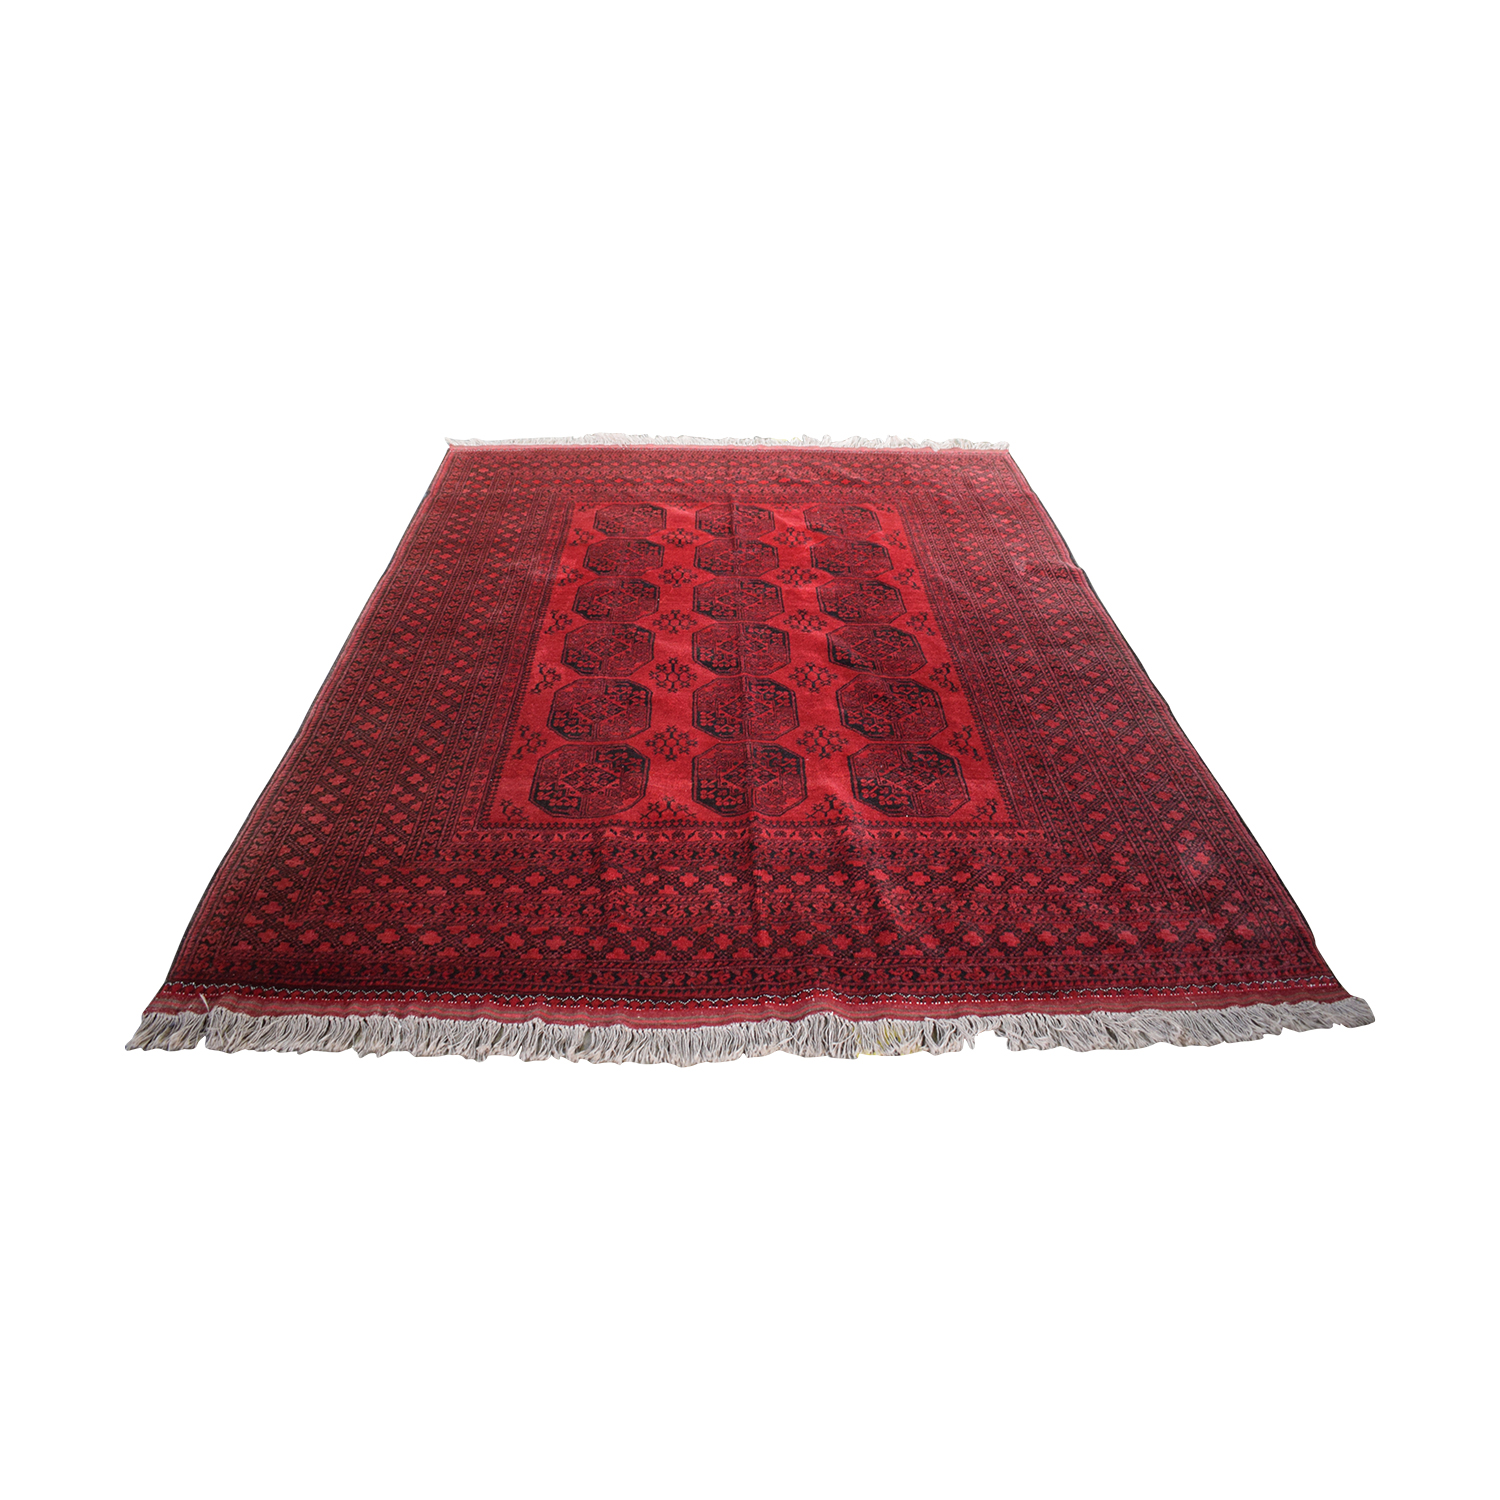 Red Persian Rug price